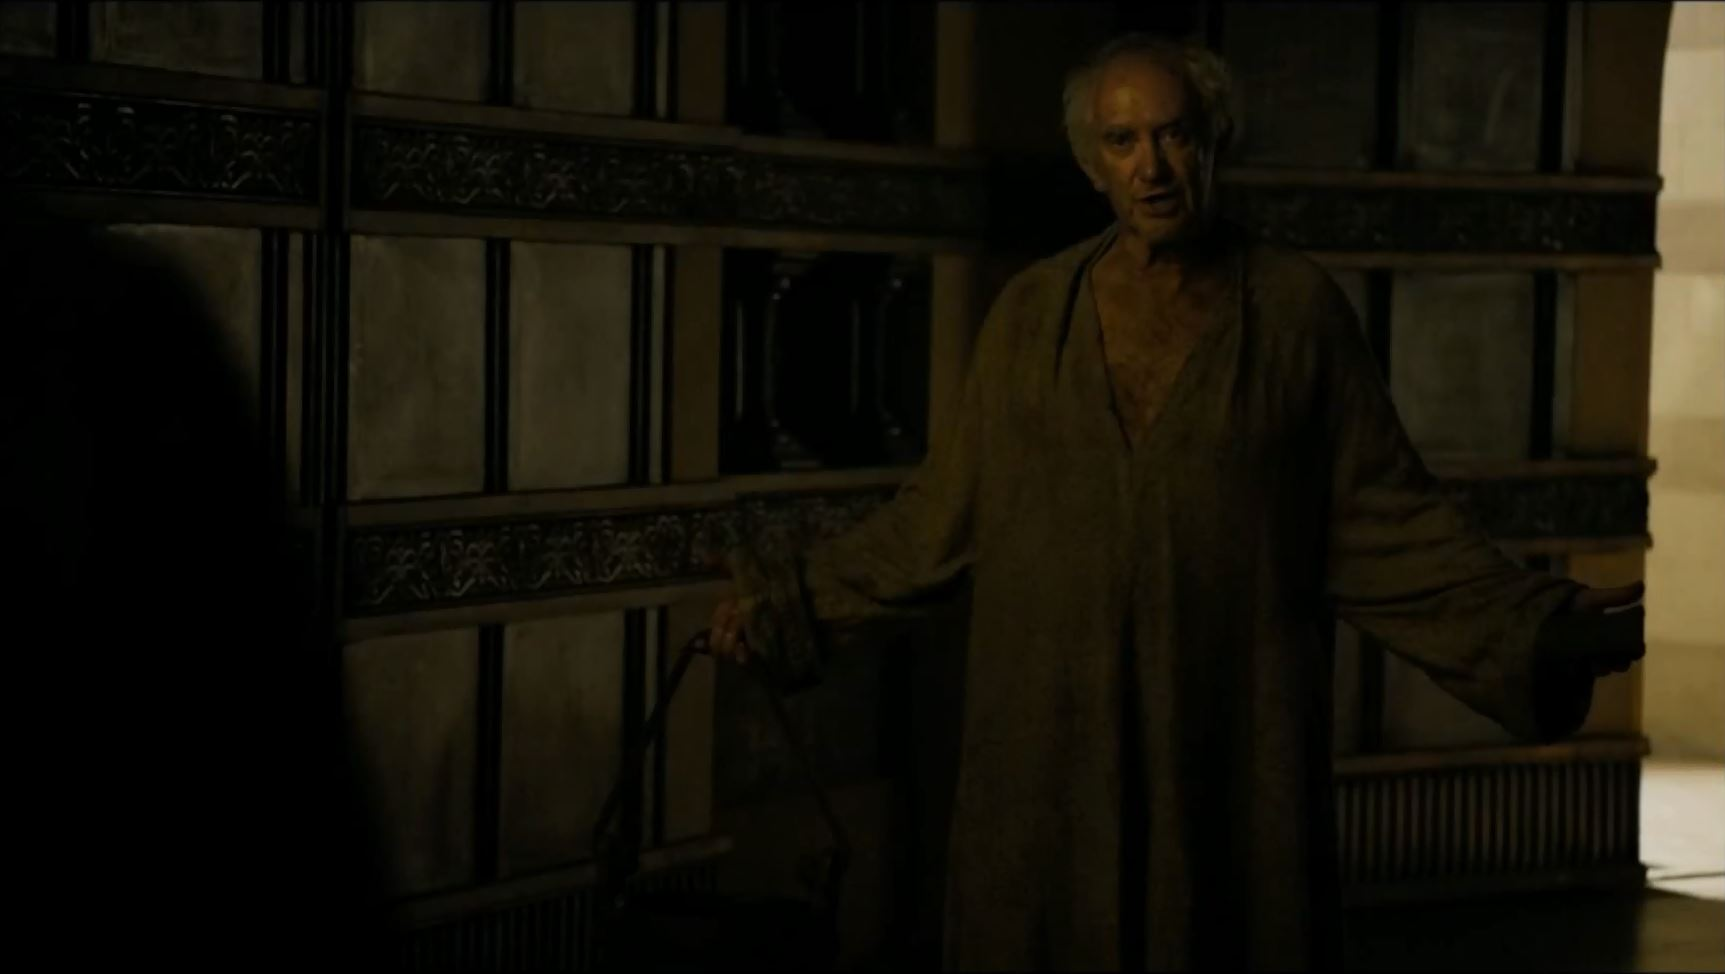 Game of Thrones Season 5 Trailer 2. Jonathan Pryce as the High Sparrow